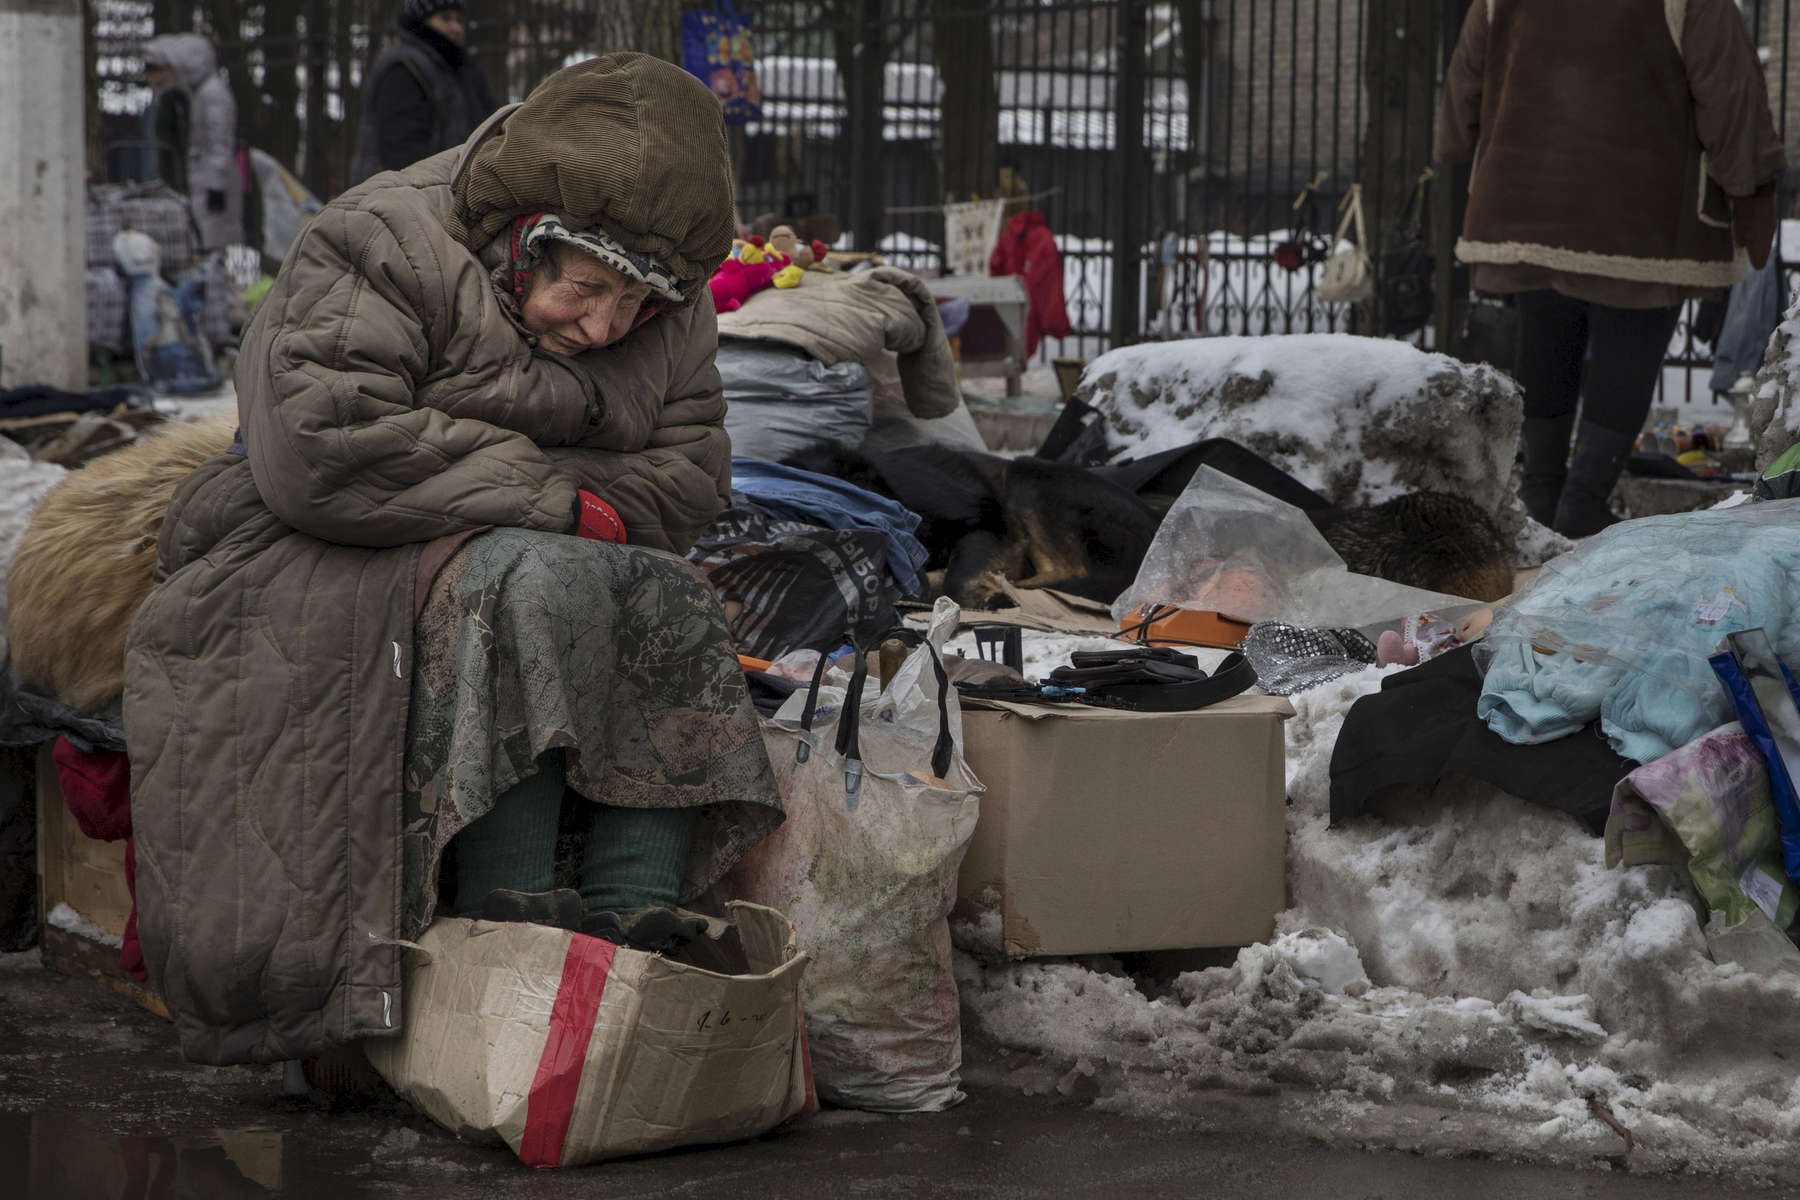 Donetsk, People's Republic (DPR) : Galina Mikhailovna , age 79, waits for customers at a second hand market in suffering during a cold winter day in February. She sells used goods that others give to her in the market for pensioners, sits in the snow with some street dogs. She has no pension, she never went to Ukraine to register, claims she can't afford to travel to the other side every 57 days which is required by the government. She is in  debt so can't afford to pay for heat and water in her apartment anymore.